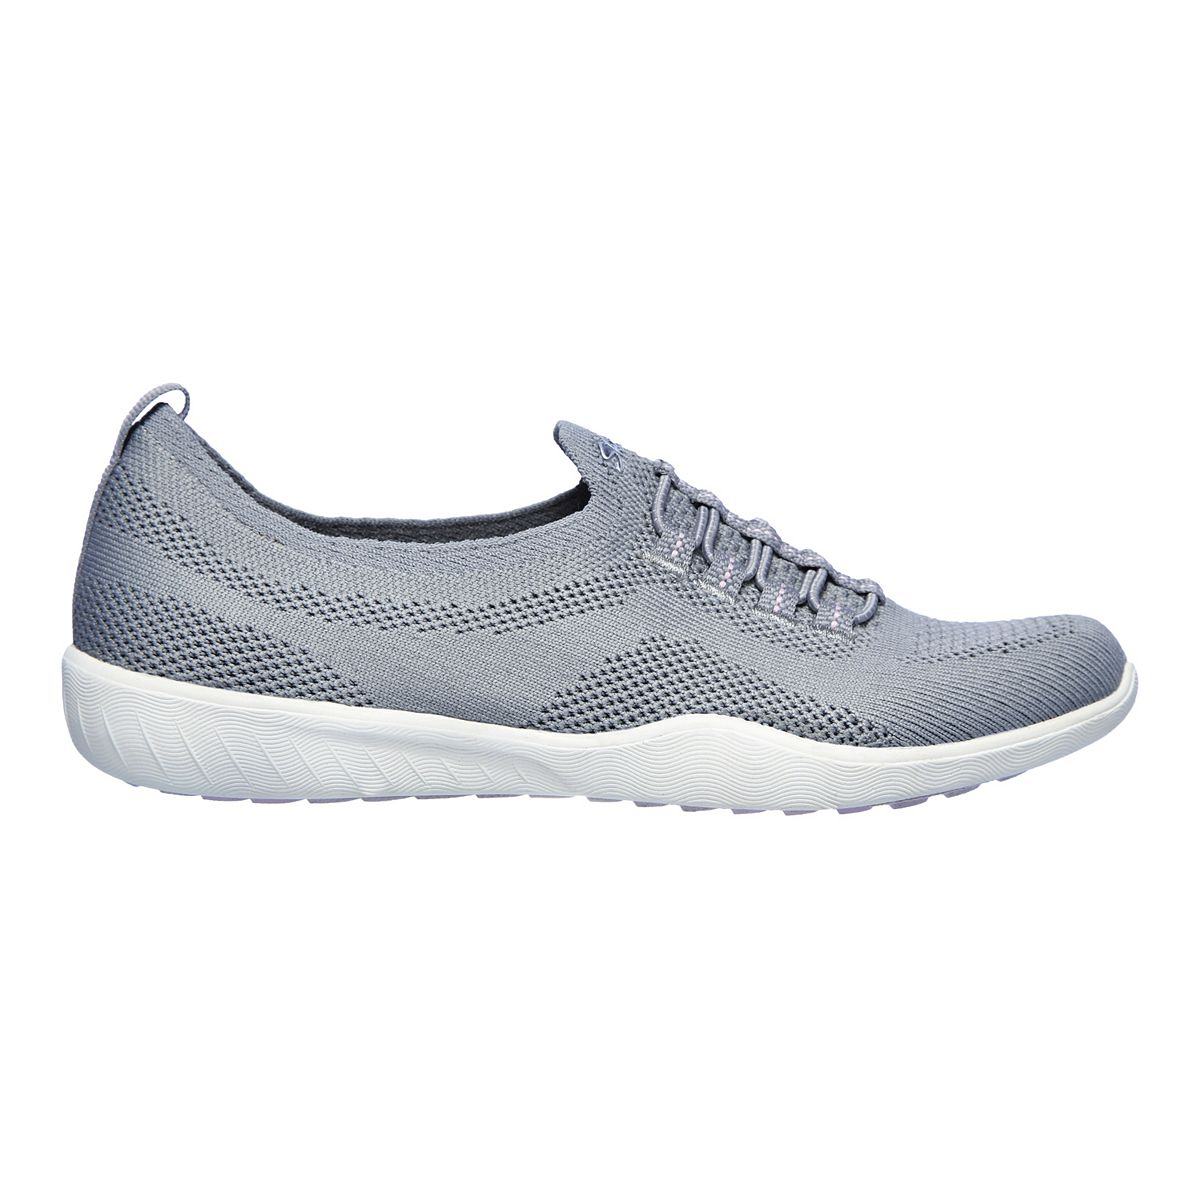 Skechers® Newbury St. Every Angle Women's Shoes Light Taupe Ntk0n